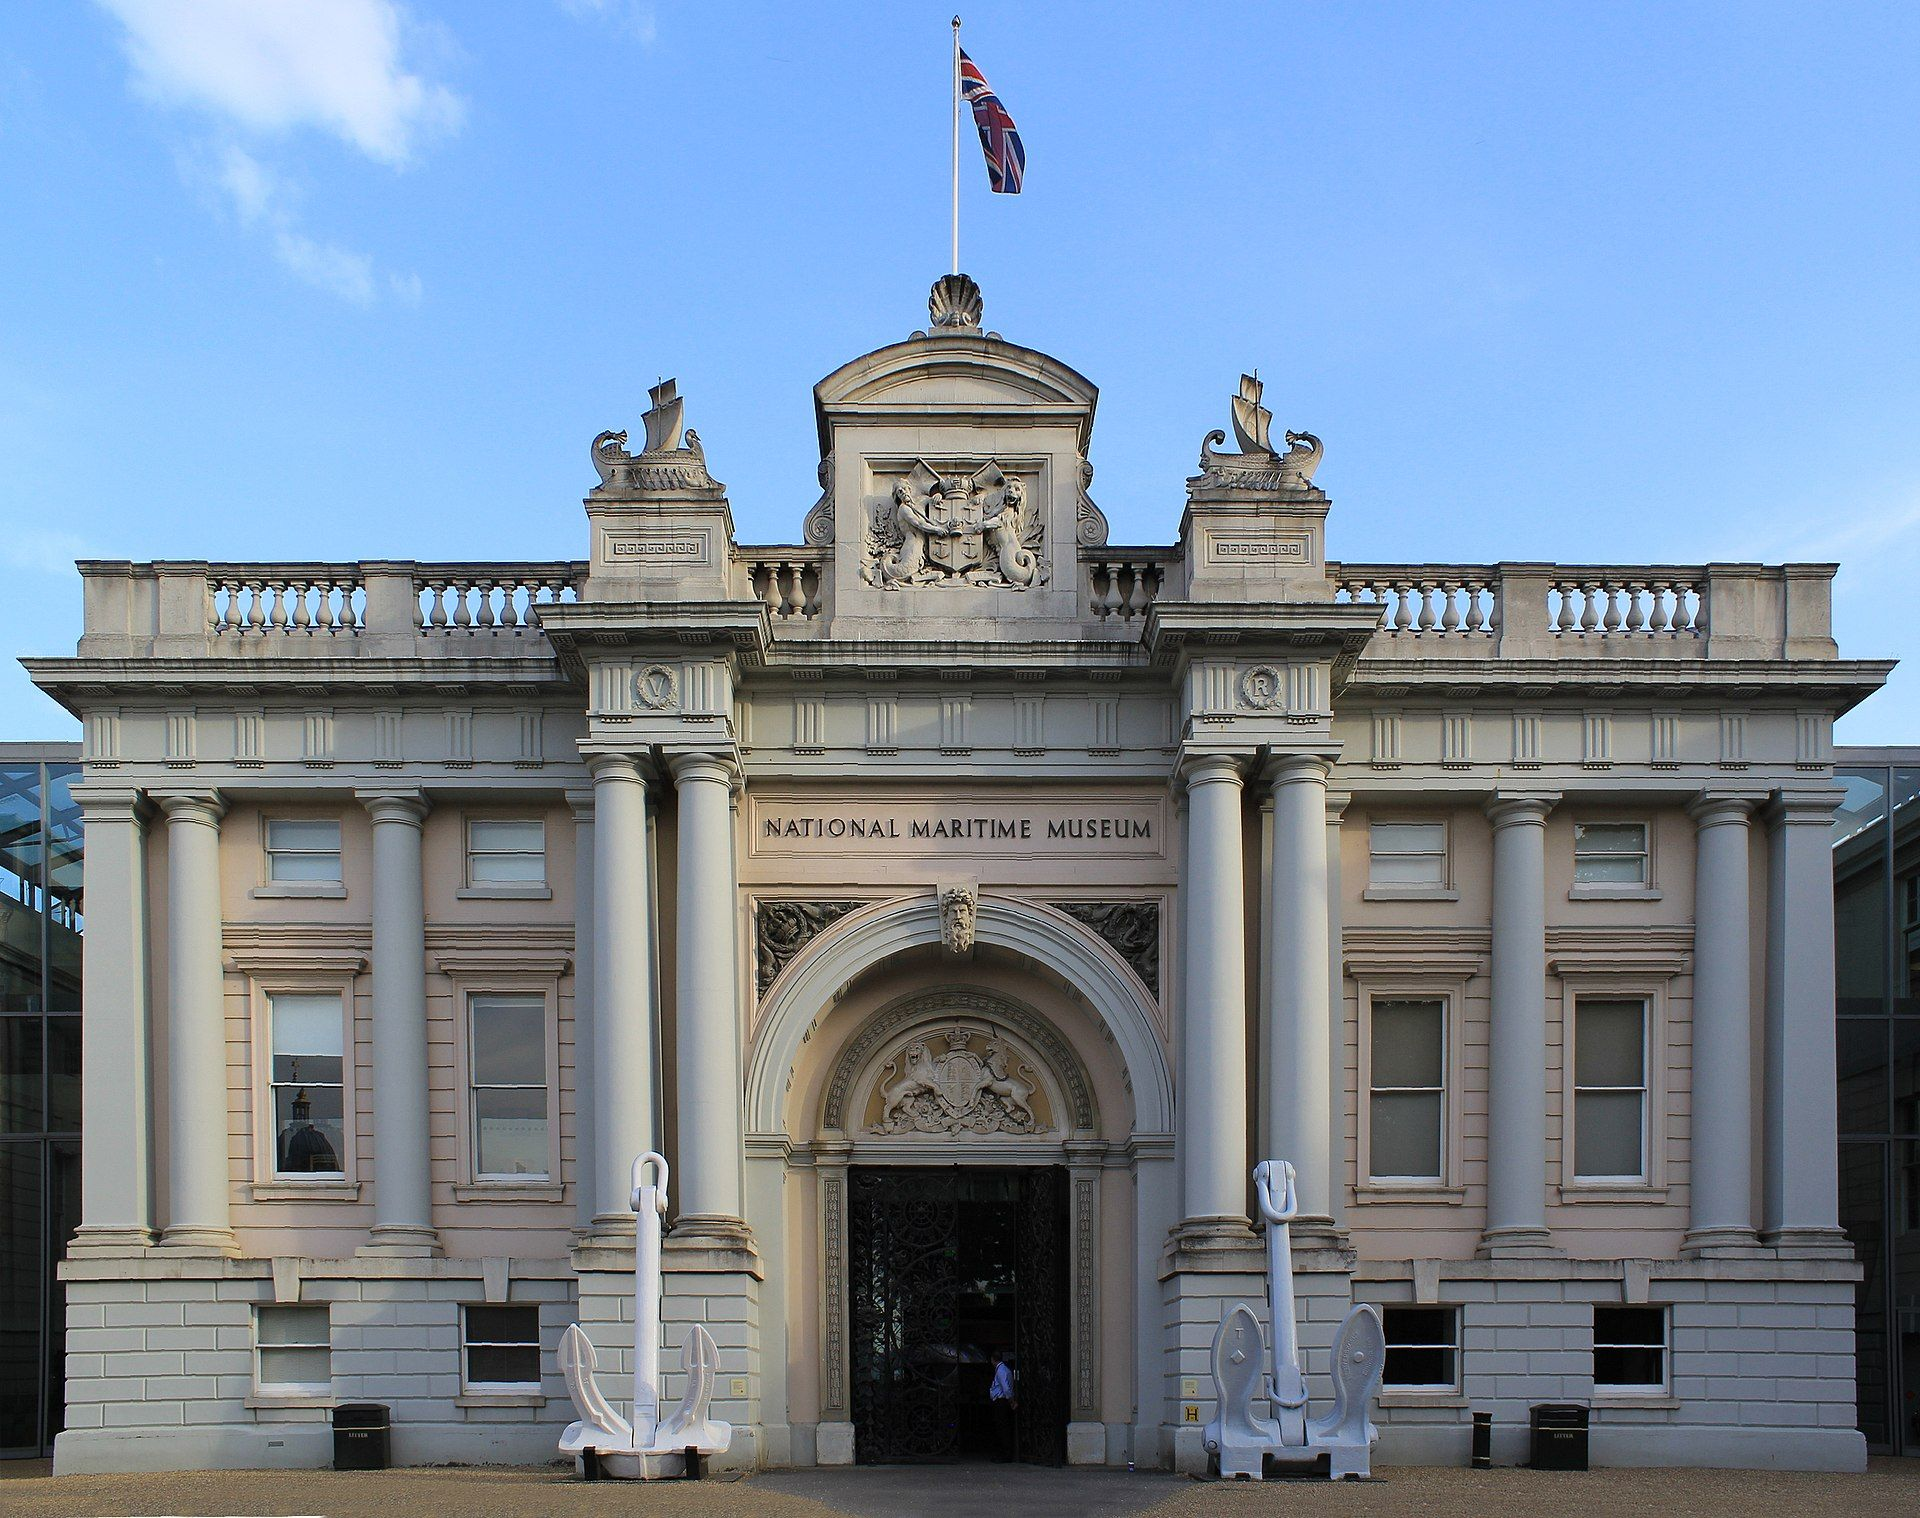 The National Maritime Museum, part of the Royal Museums Greenwich Photo: Katie Chan via Wikimedia Commons